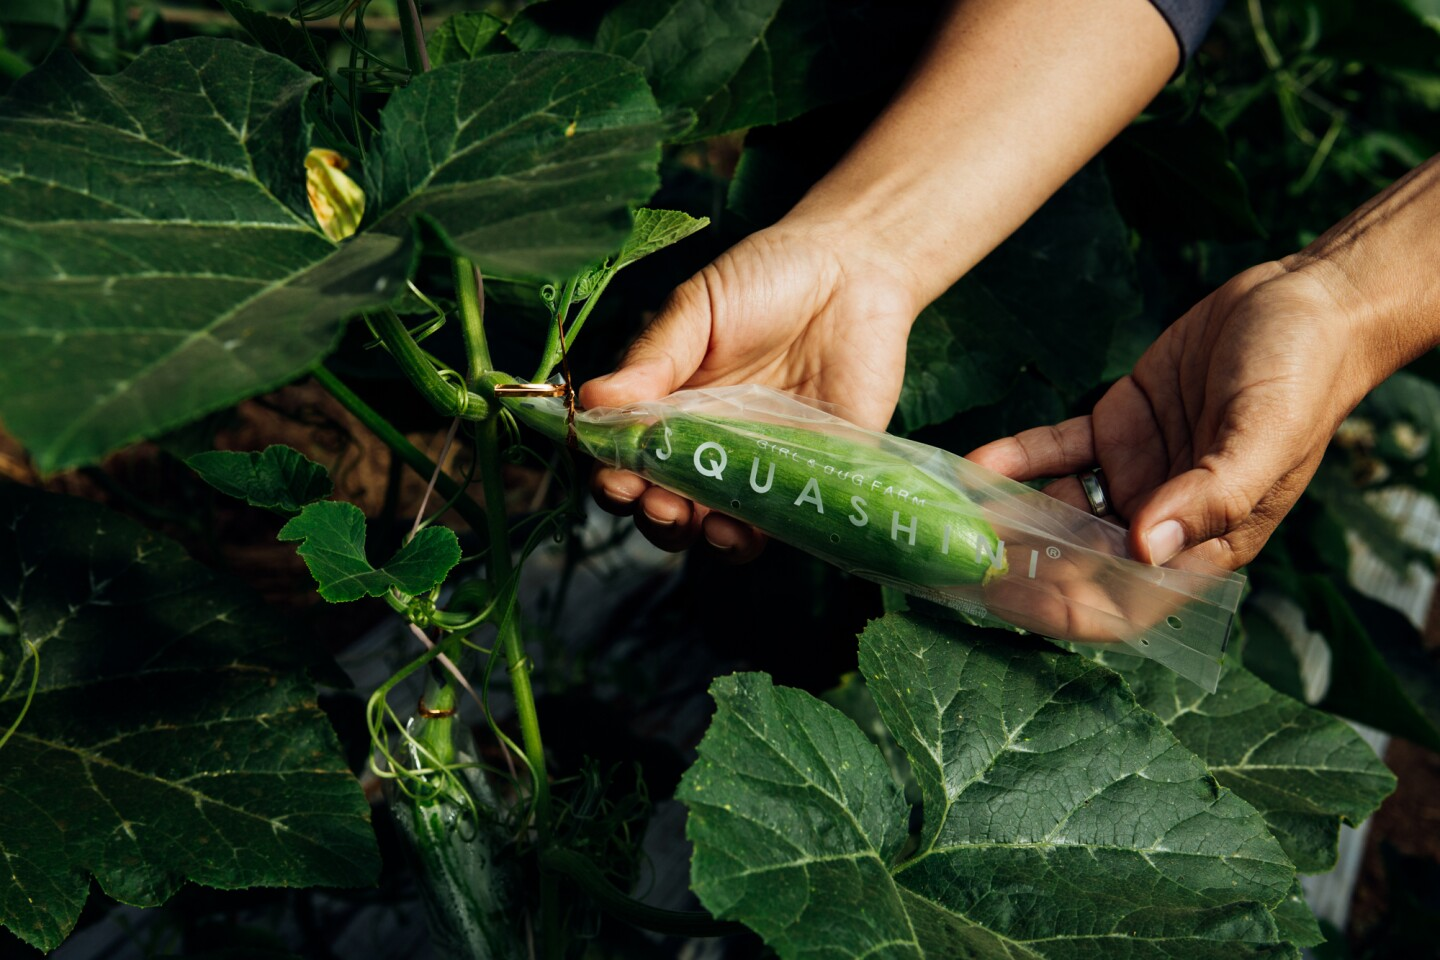 Aaron Choi presents a squash growing in the fields of Girl and Dug Farm.